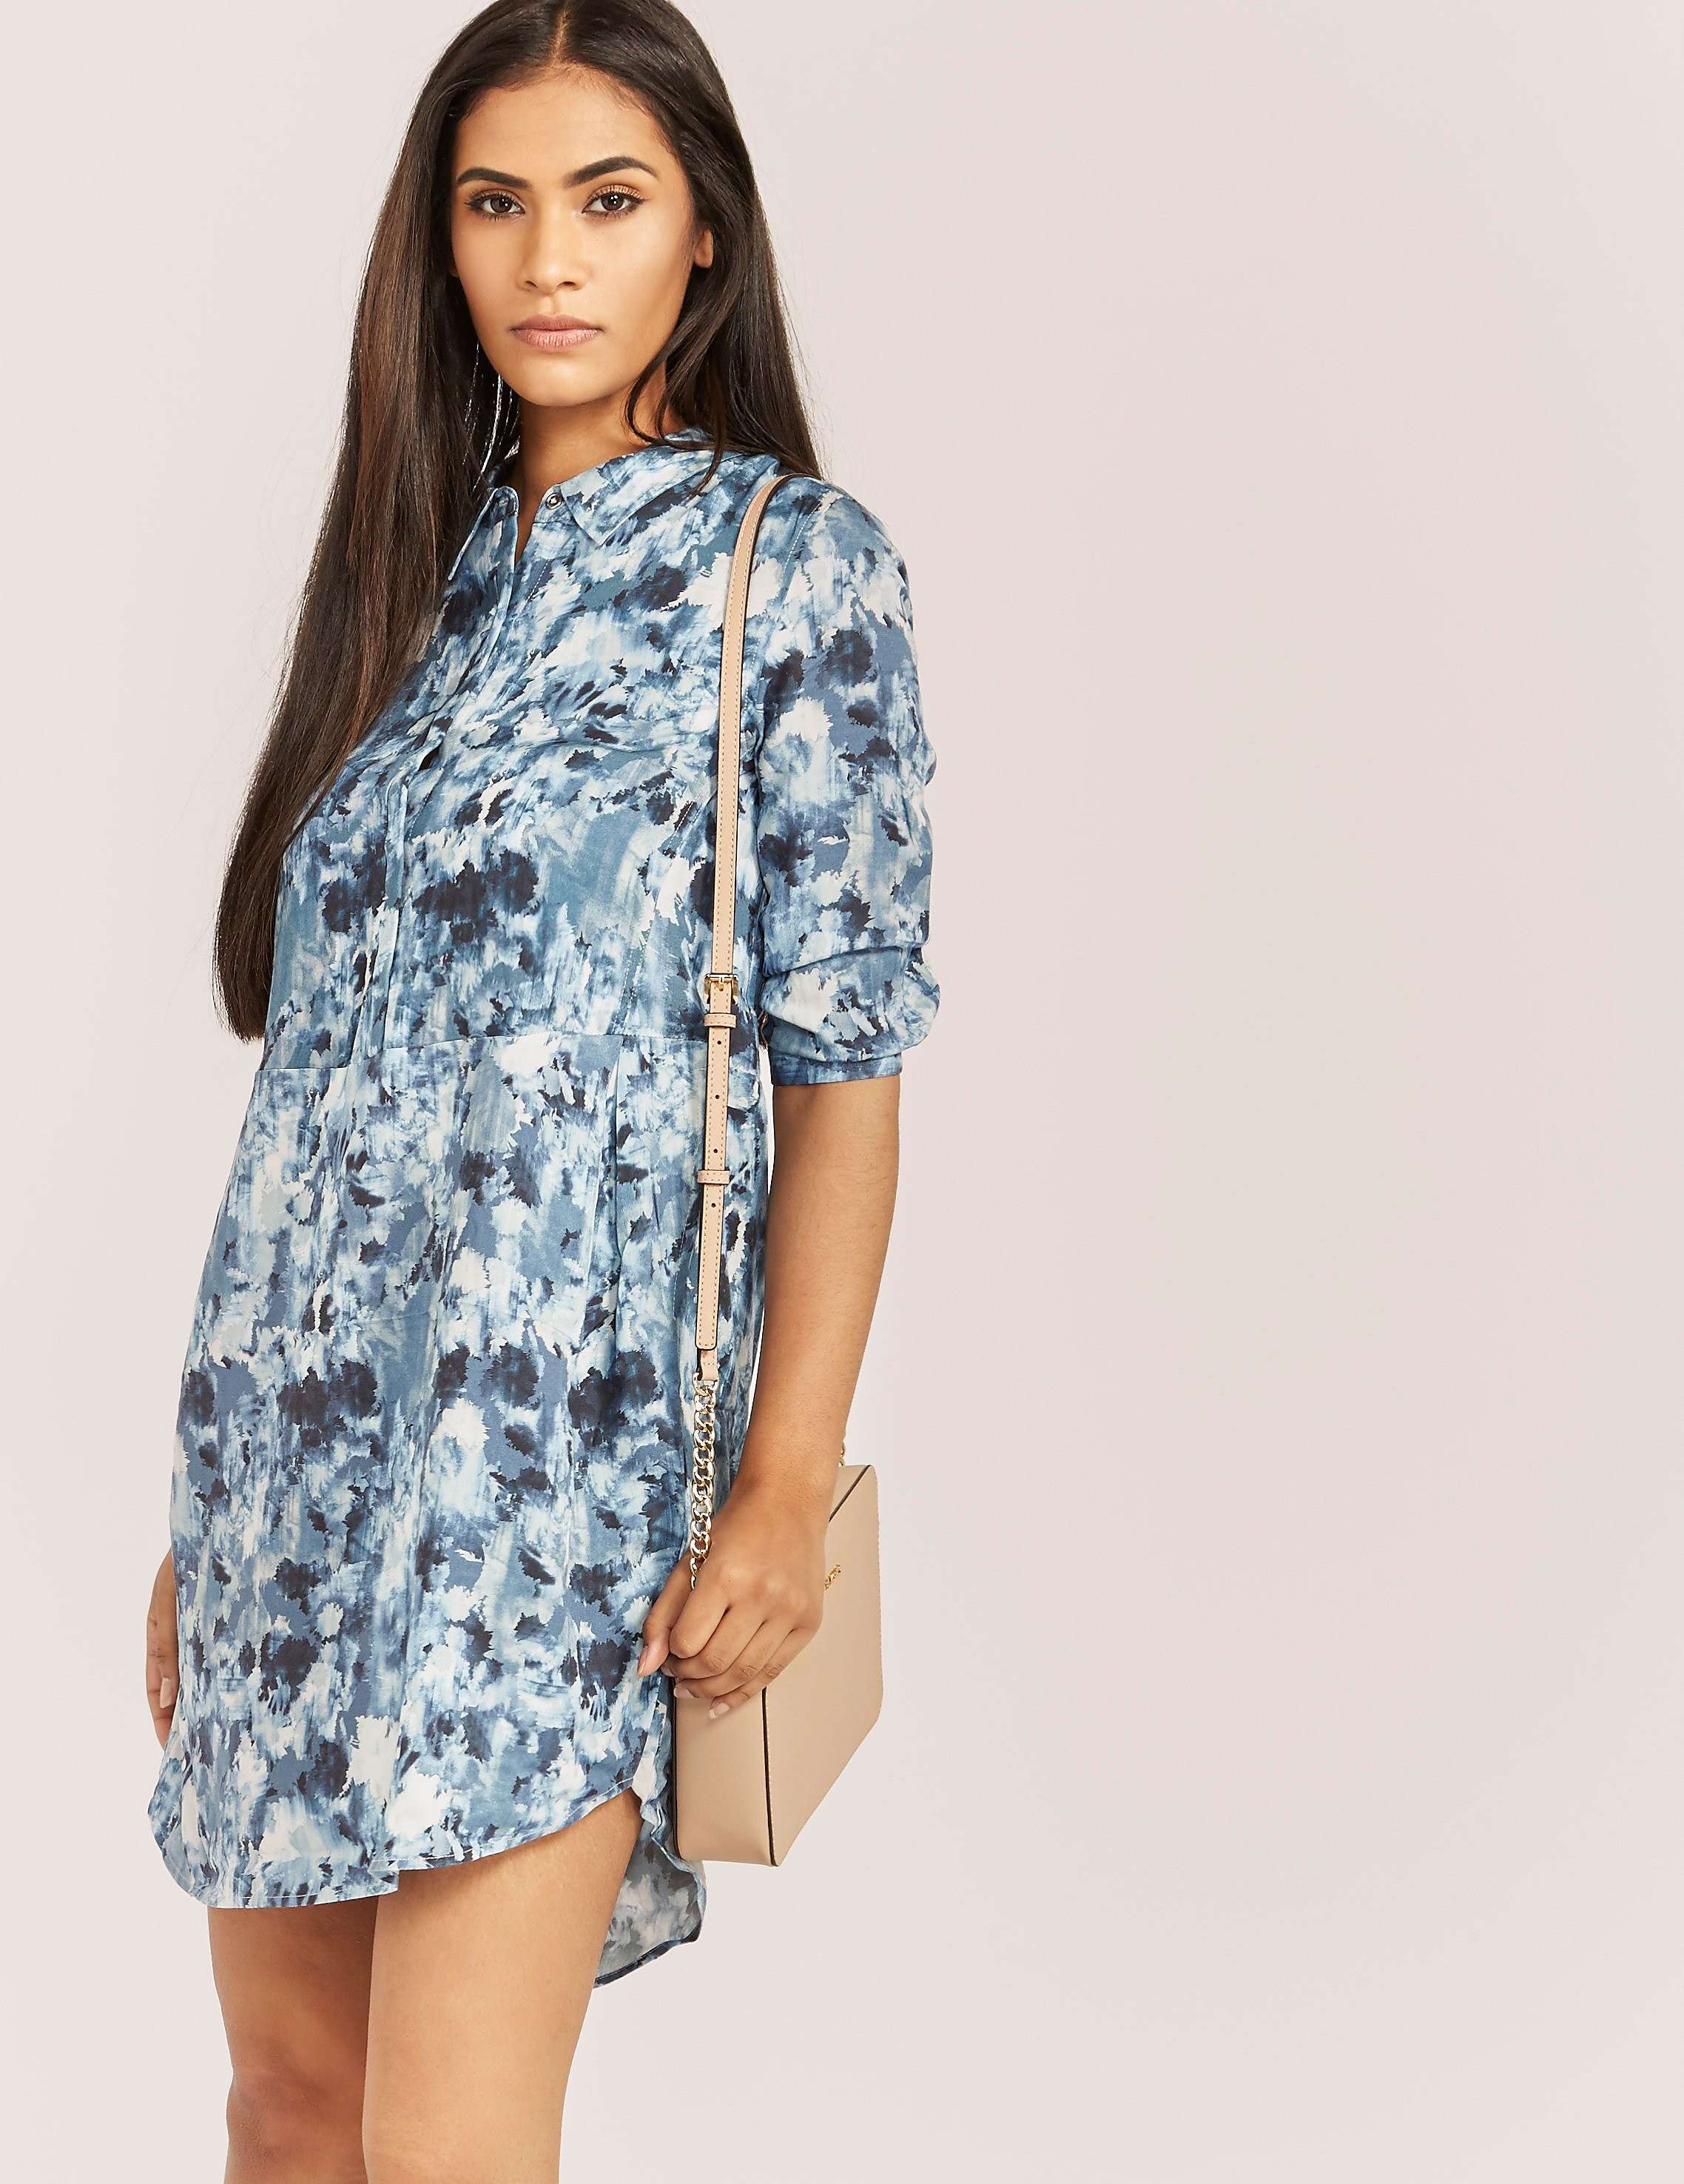 Calvin Klein Floral Shirt Dress